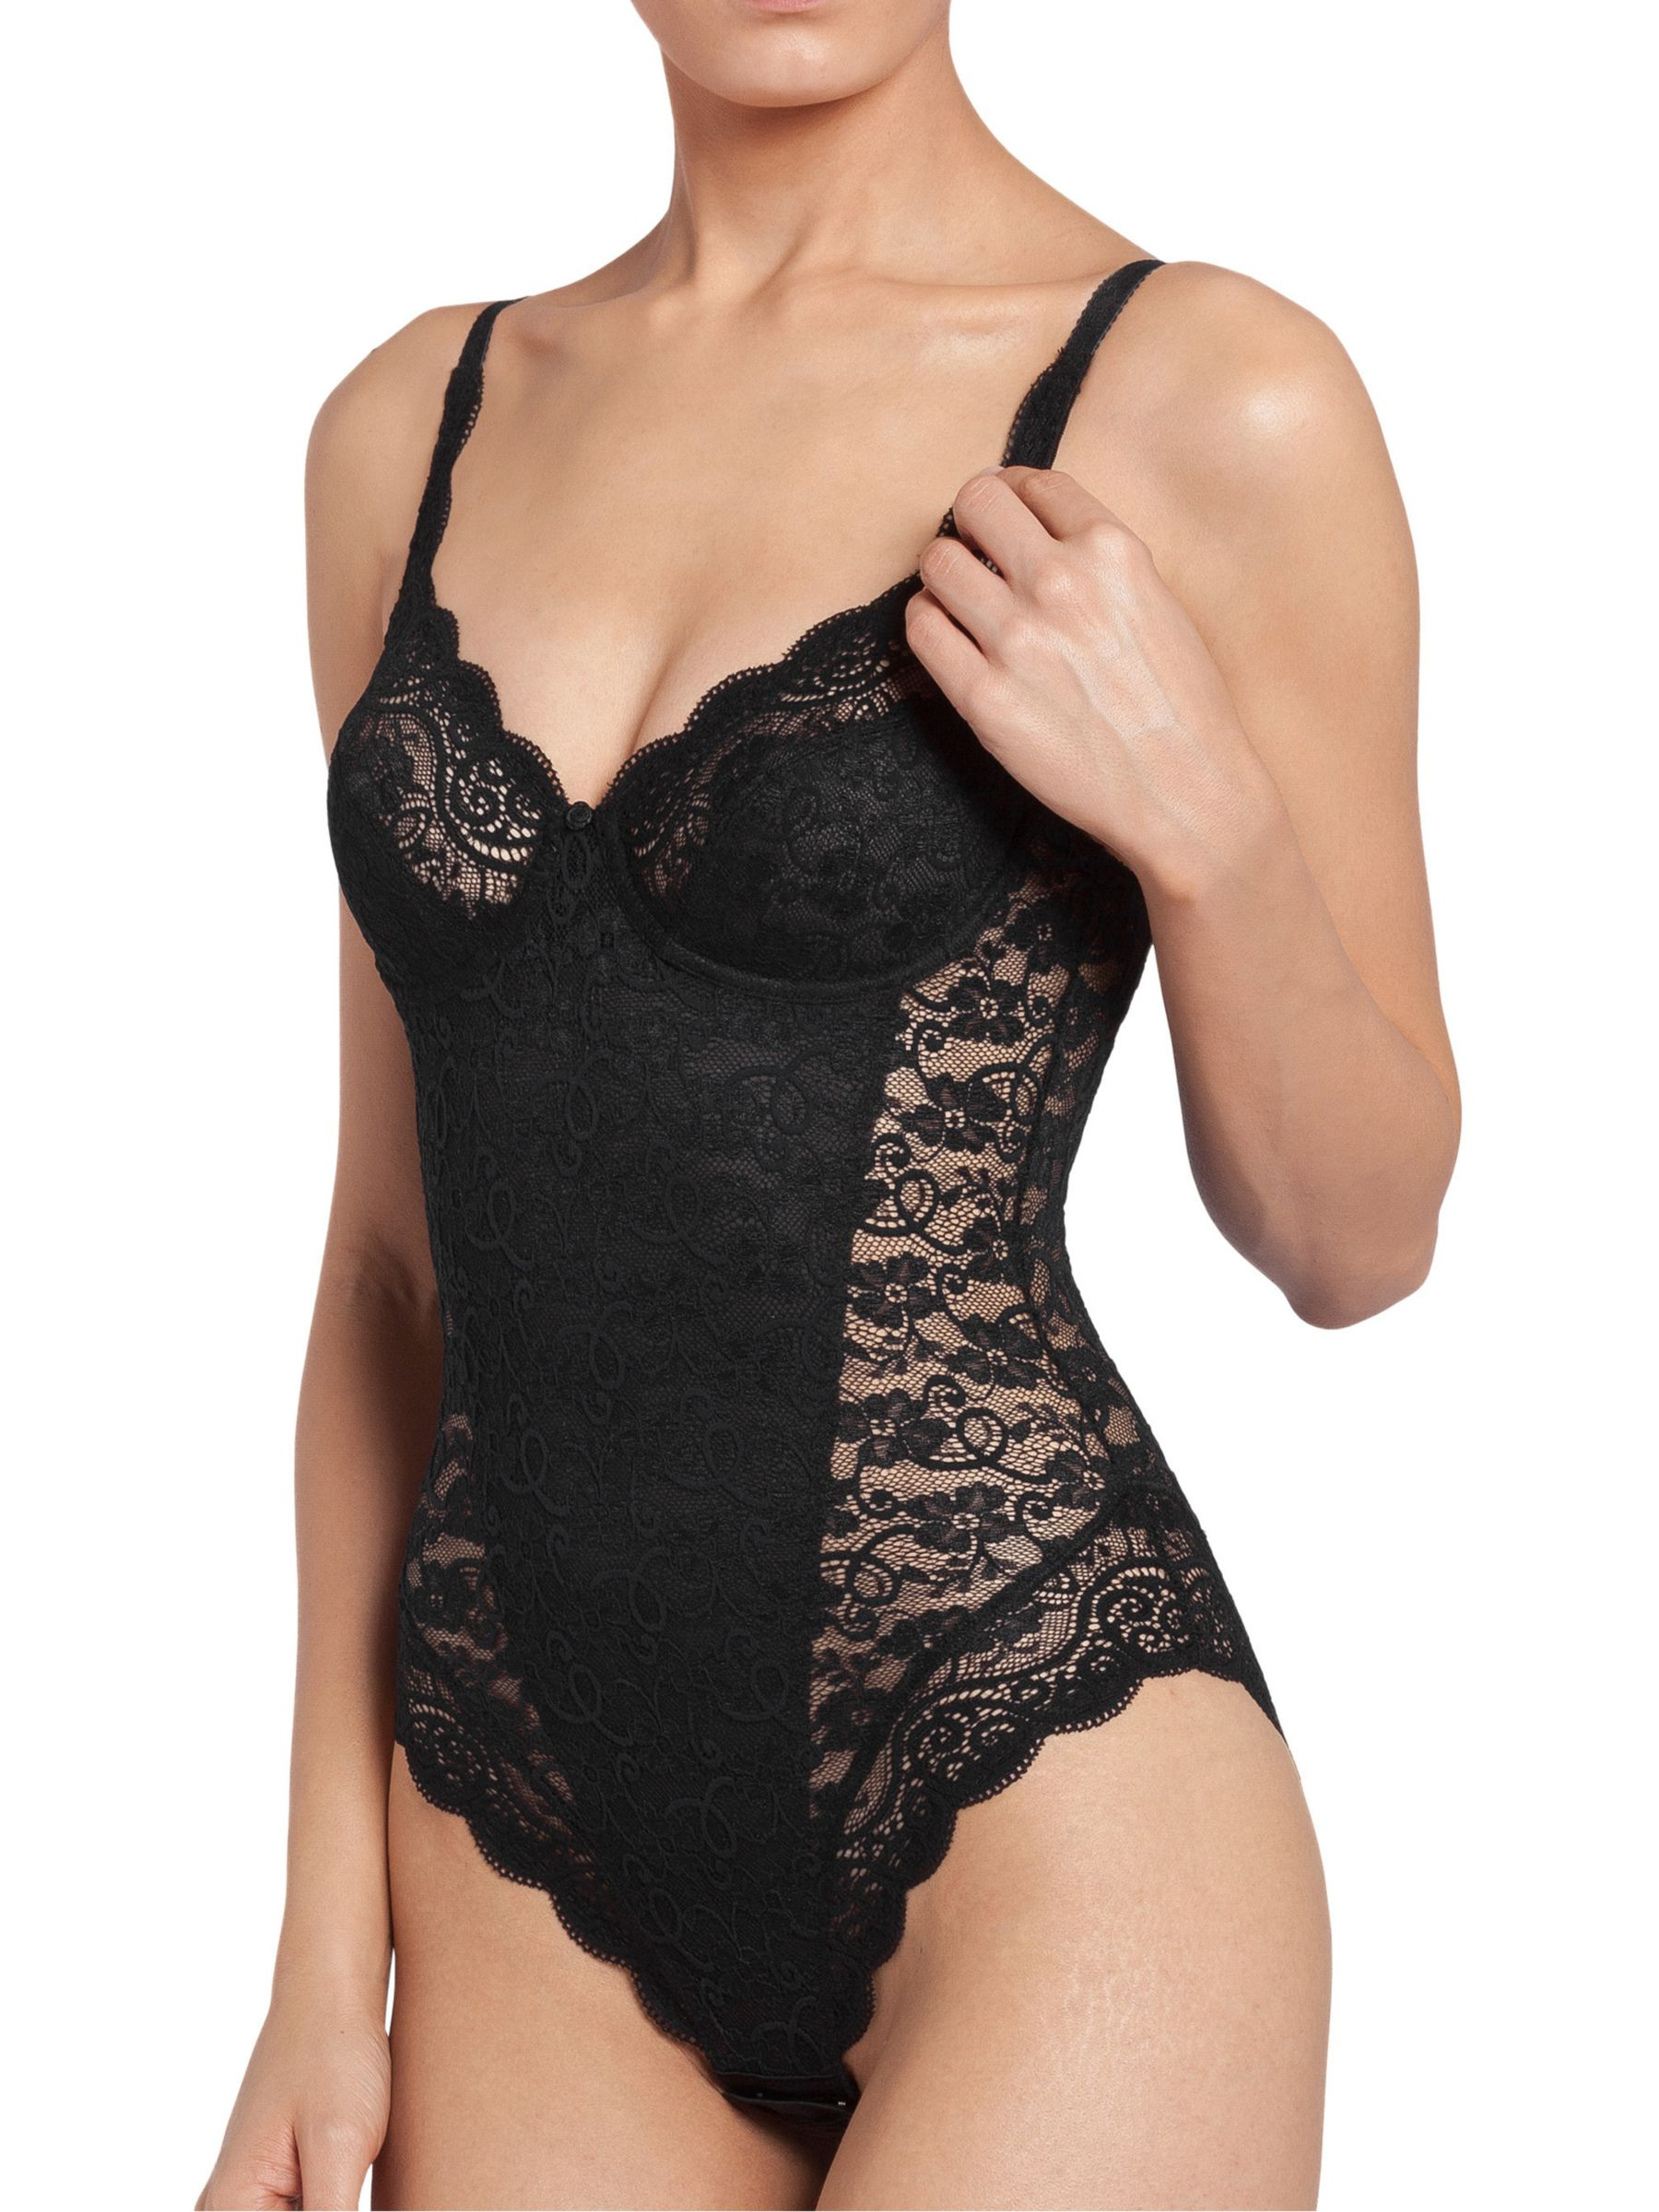 Triumph Triumph Amourette 300 Lace Body, Black